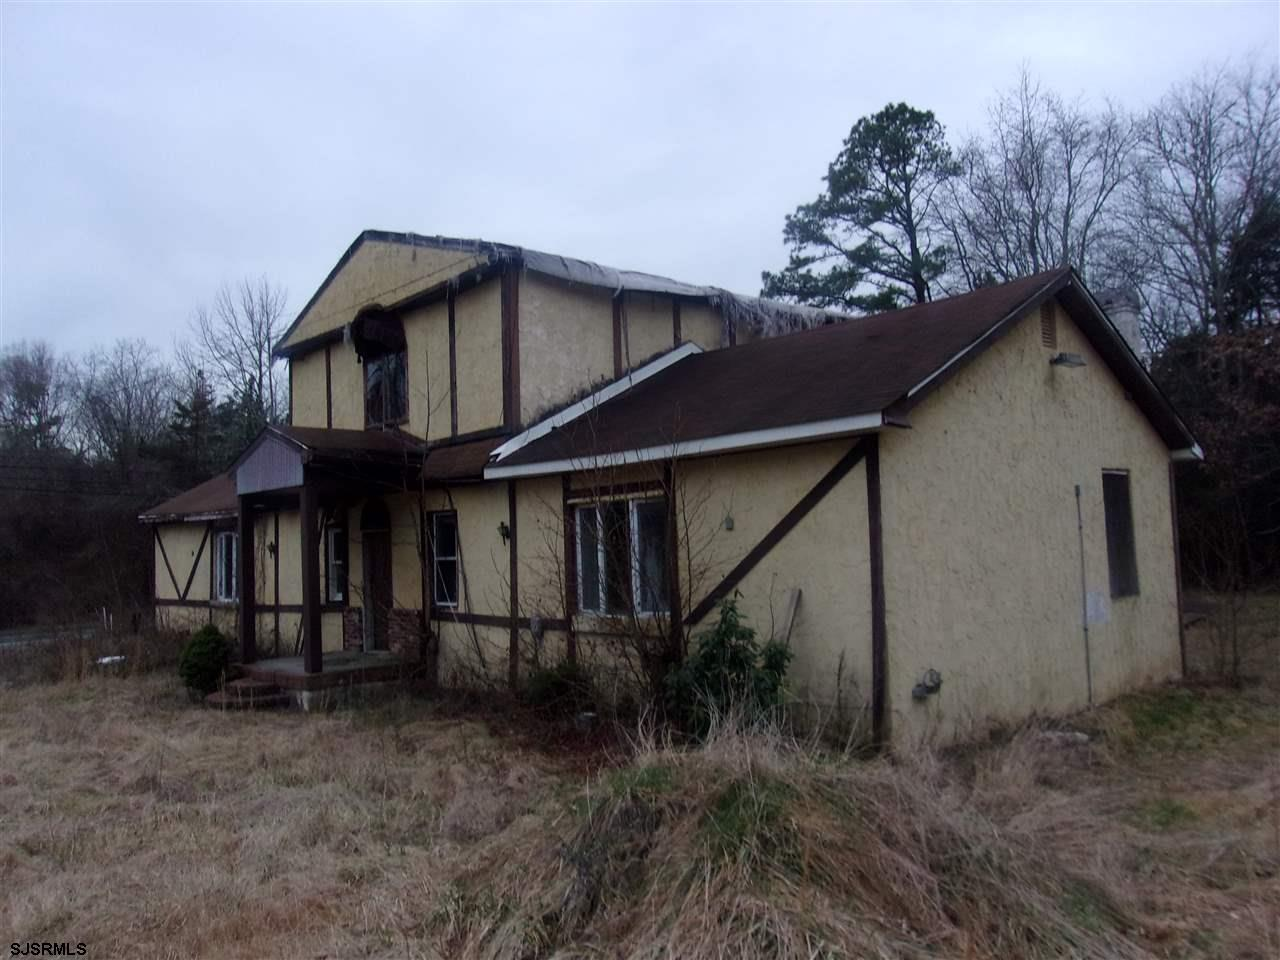 2594 Sq ft 4 beed 3 bath on a 99 X 279 ft lot in need of total rehab. The well and septic were insta